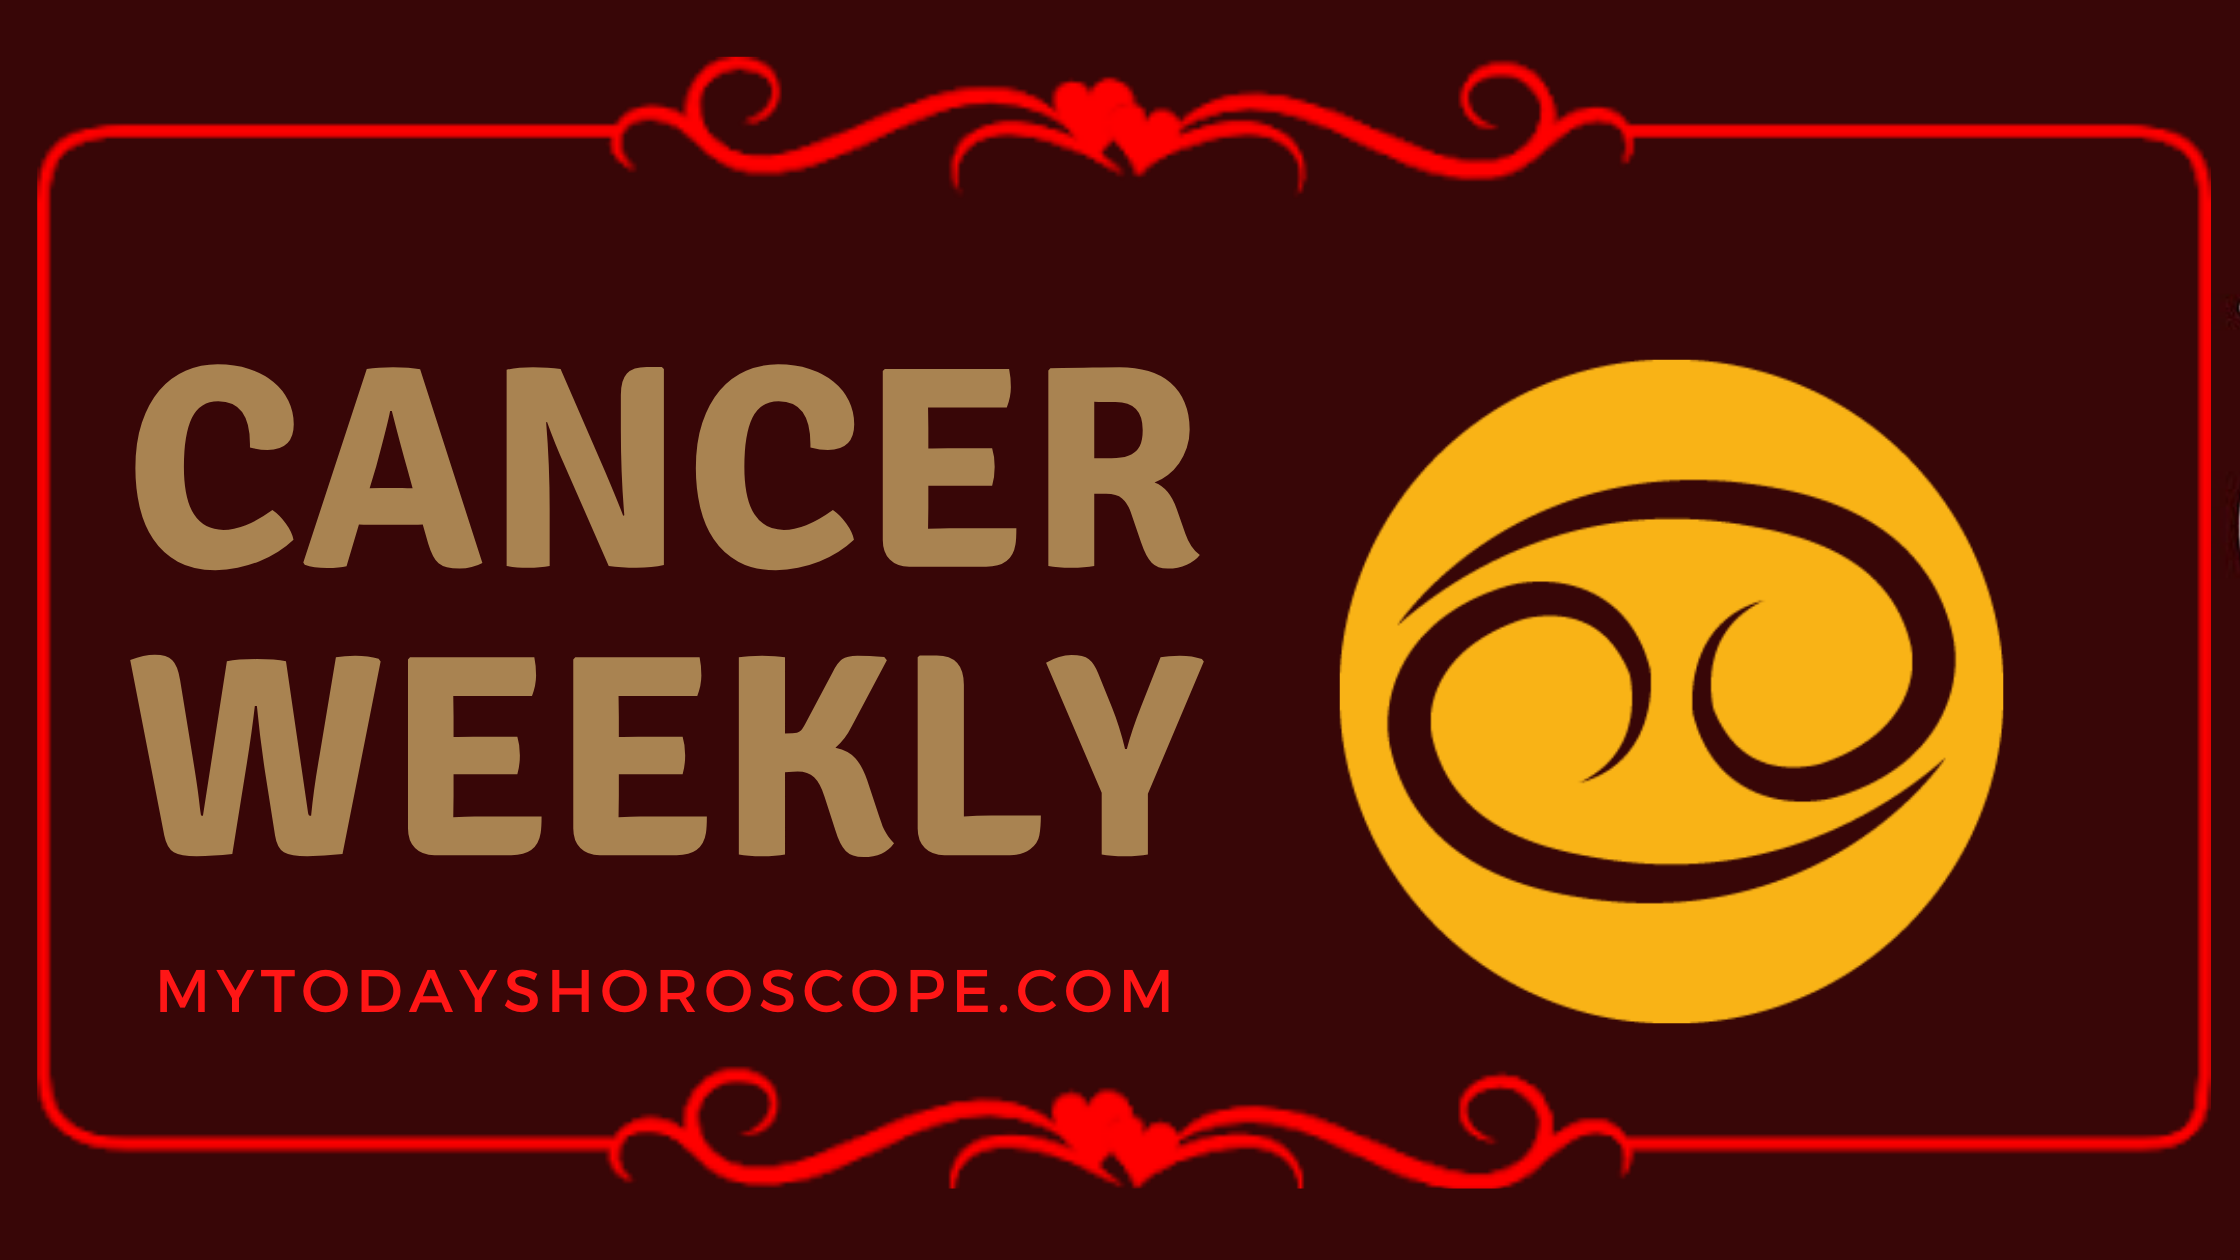 Daily Love Cancer Horoscope, Daily Luck Cancer Horoscope, and Daily Career Cancer Horoscope